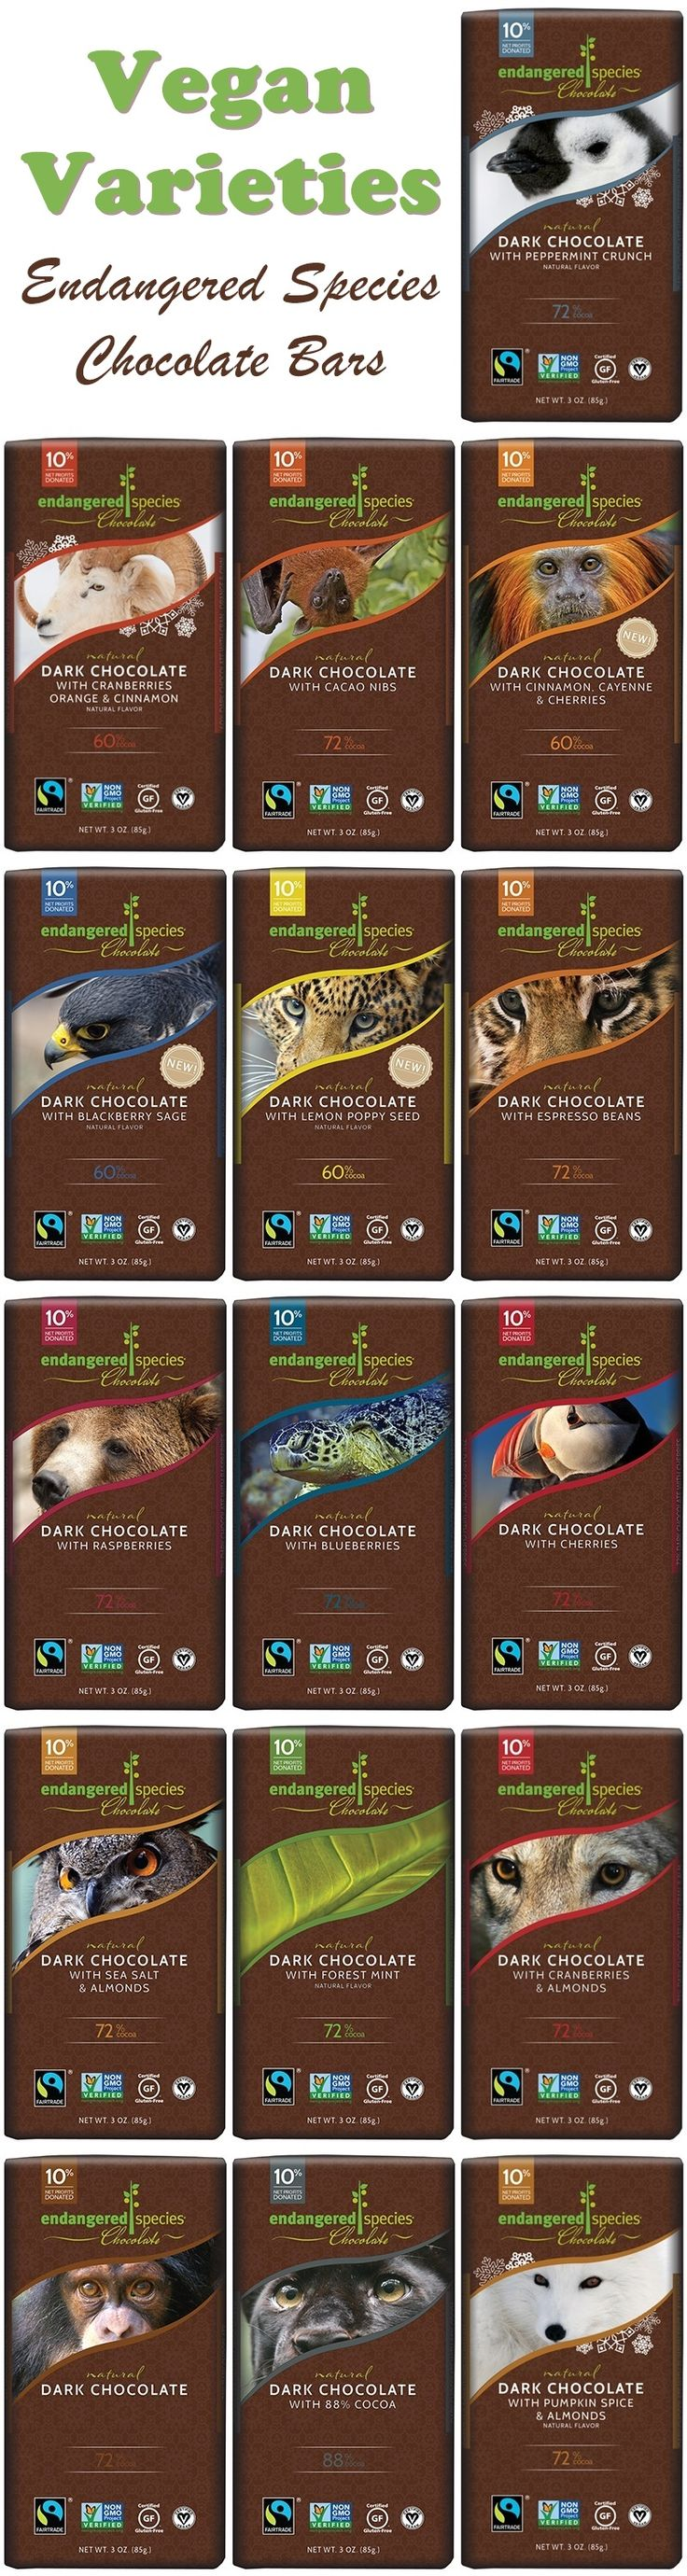 Endangered Species Chocolate Bars - Review and List of Vegan and Dairy-Free Varieties (certified gluten-free, too!)